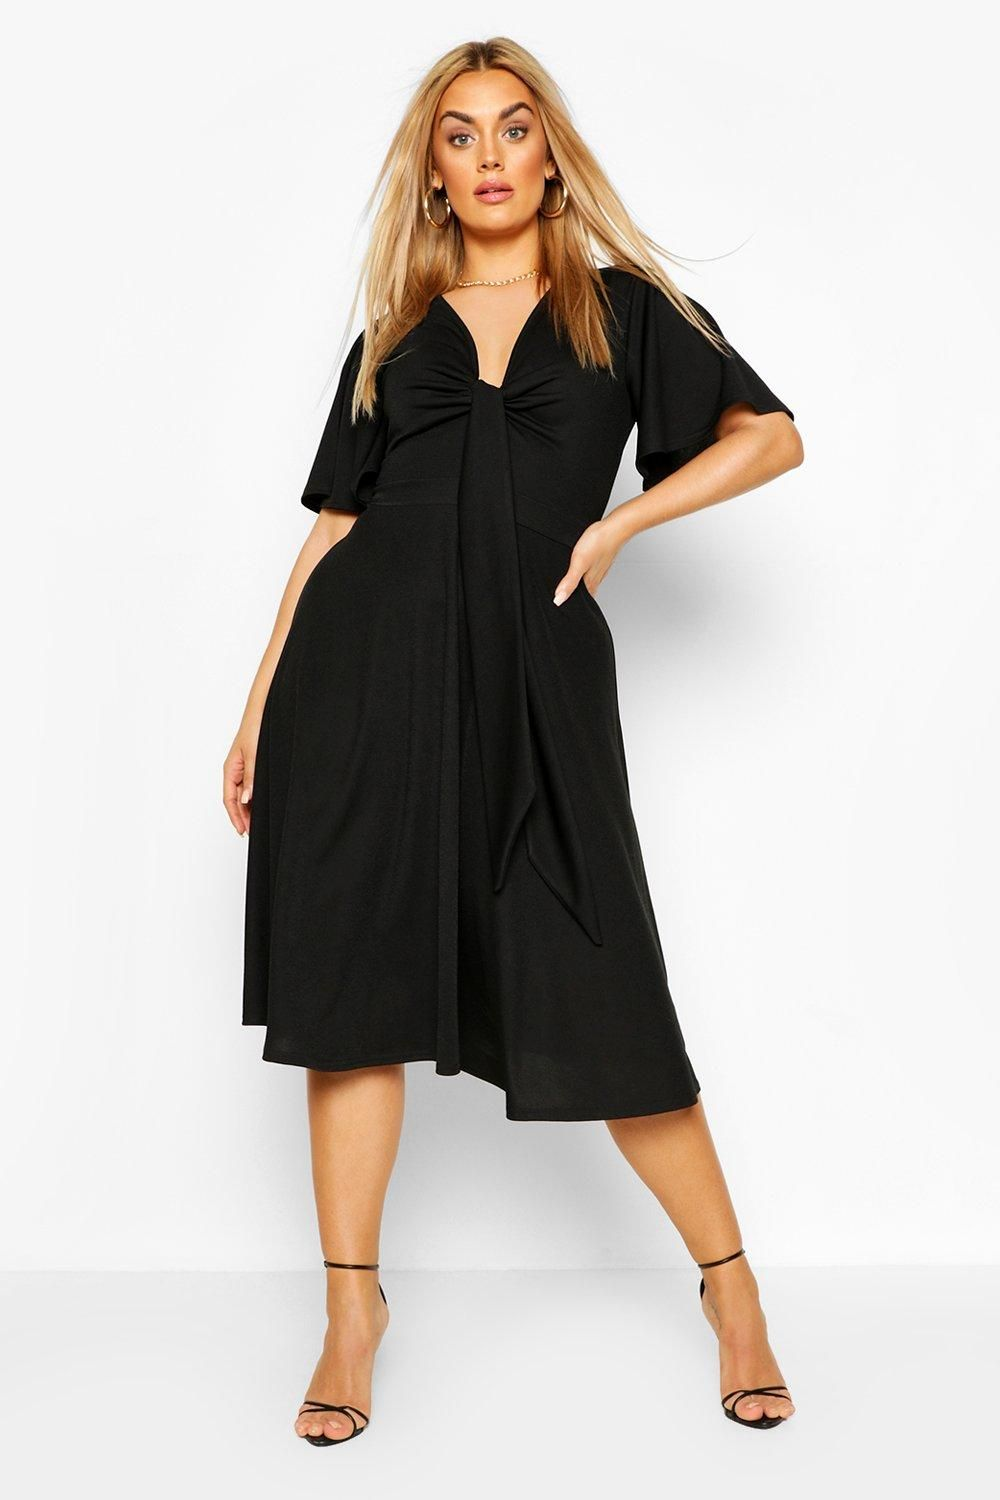 Plus Tie Front Angel Sleeve Midi Dress Boohoo Midi Dress With Sleeves Bodycon Fashion Womens Skirt Outfits [ 1500 x 1000 Pixel ]